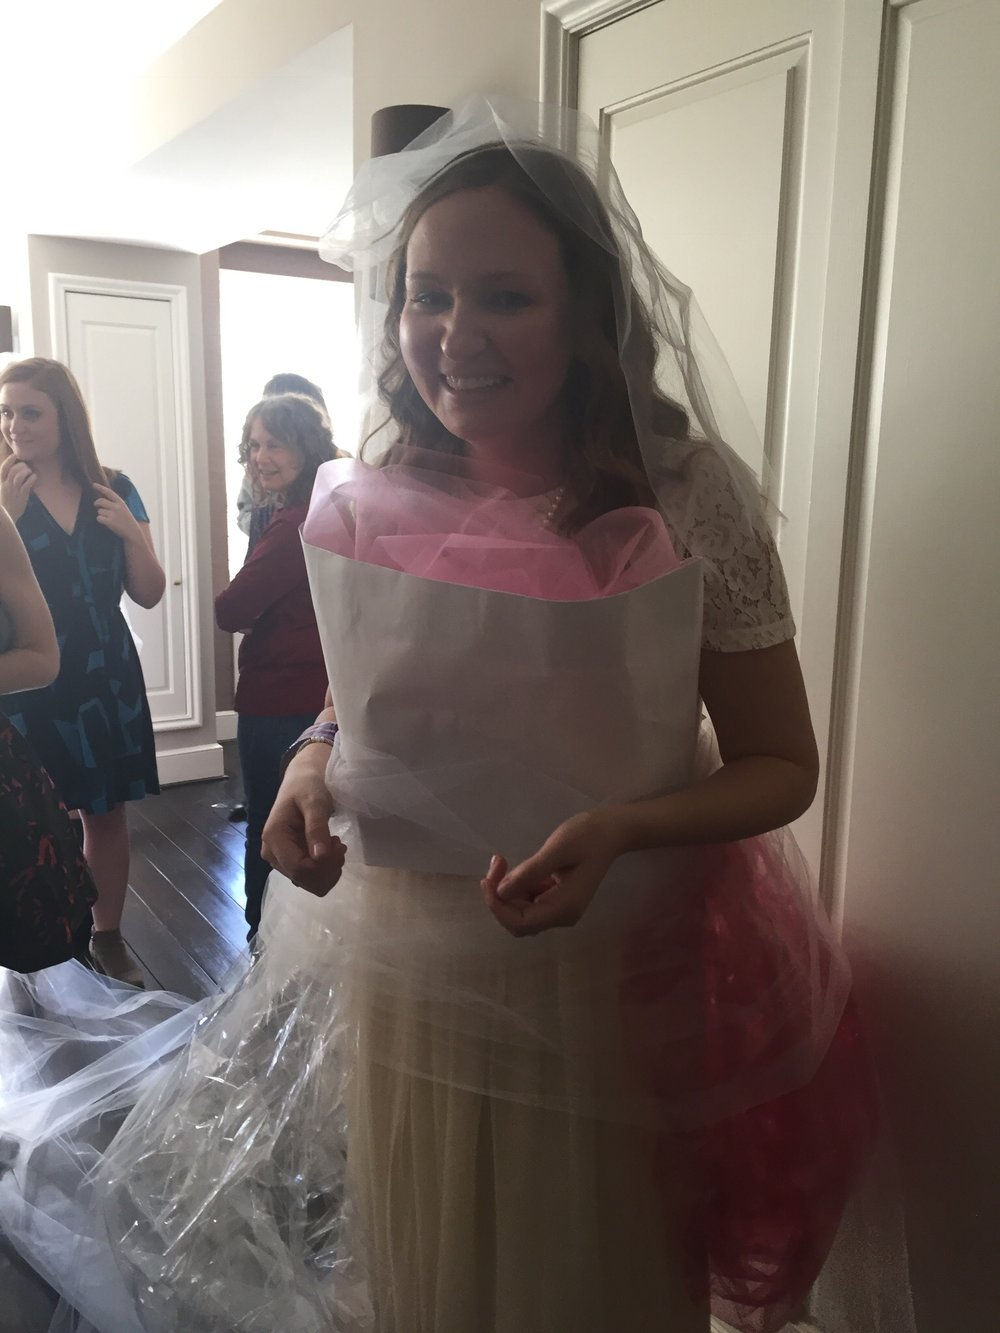 dress the bride competition